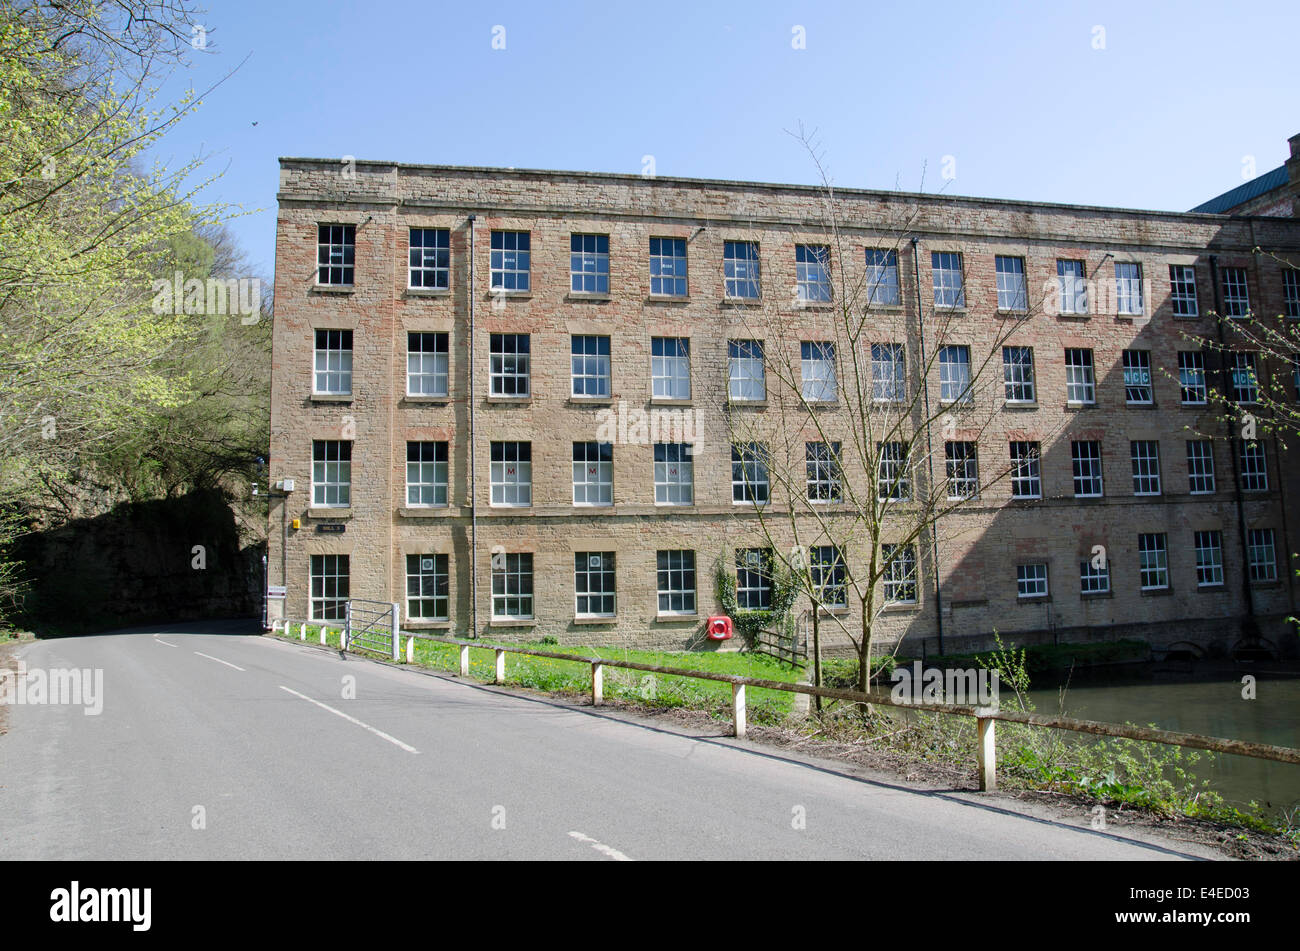 Pleasley Vale Mills, 19th century water powered cotton mill - Stock Image